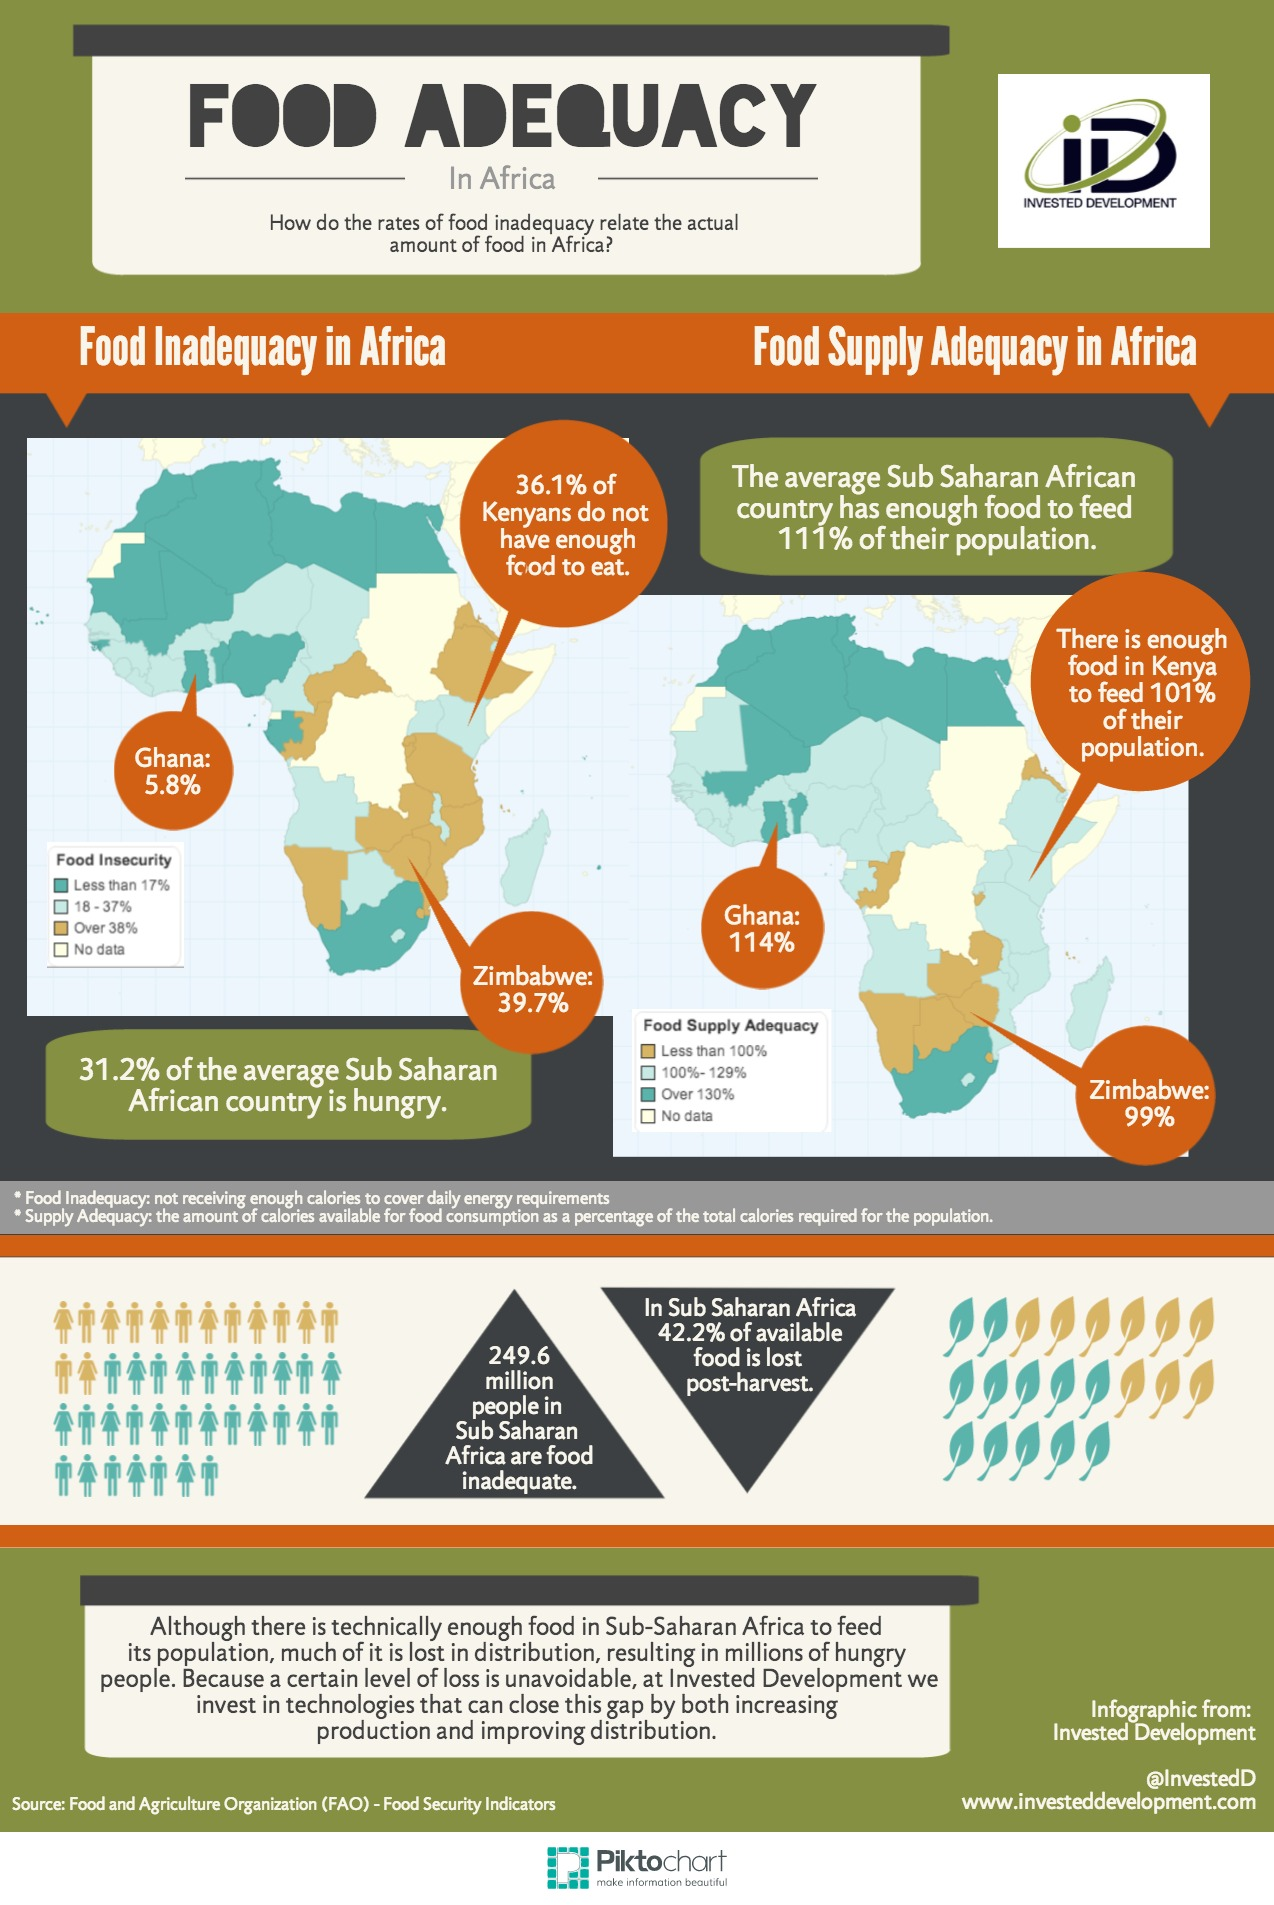 Food Adequacy Infographic